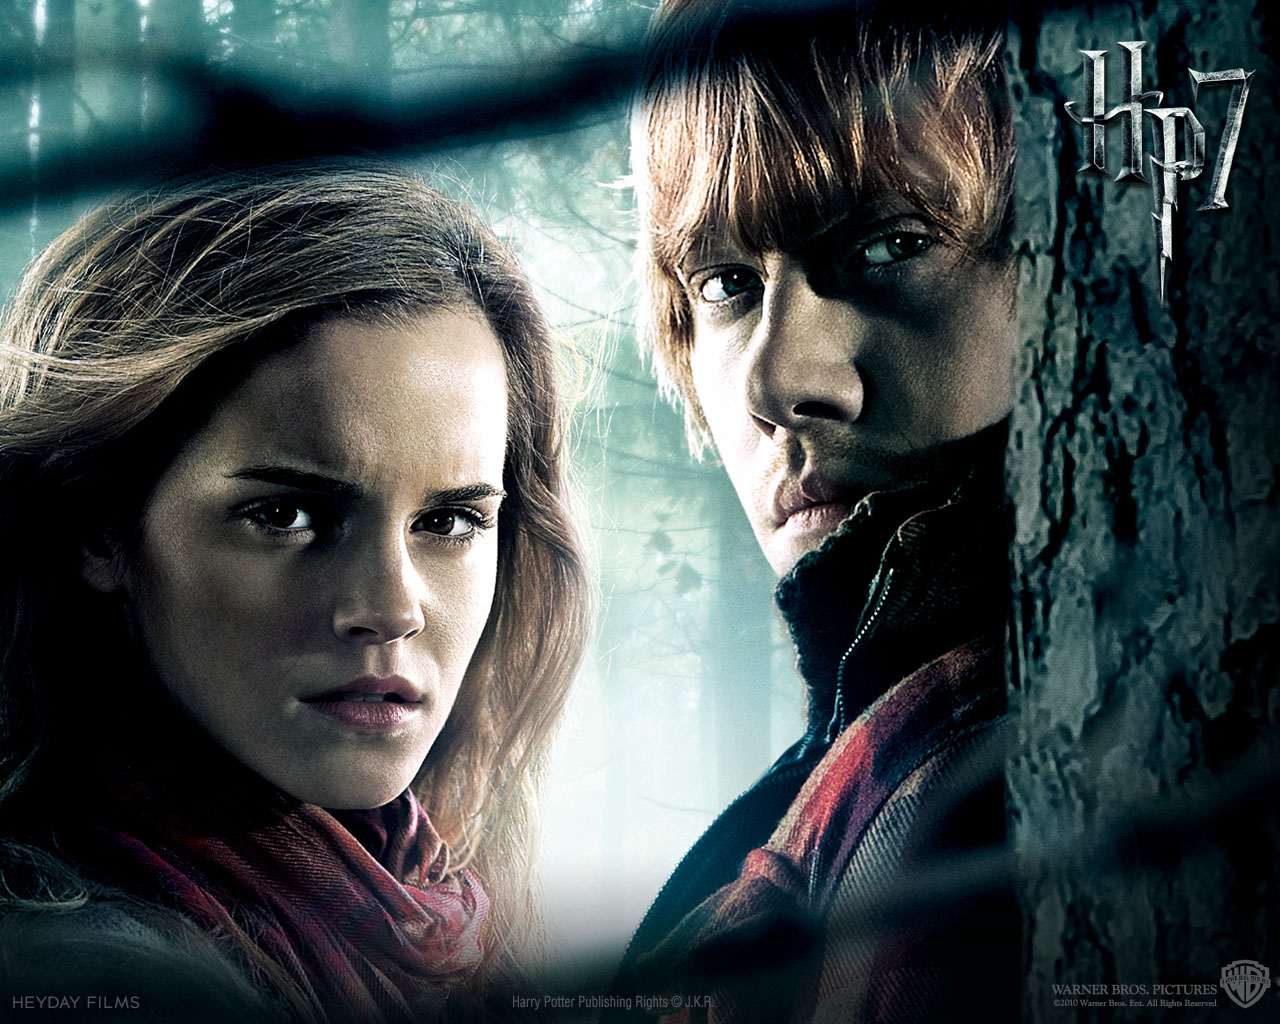 Beautiful Wallpaper Harry Potter Portrait - Emma_Watson_in_Harry_Potter_and_the_Deathly_Hallows+_Part_I_Wallpaper_10_800  Image_246371.jpg